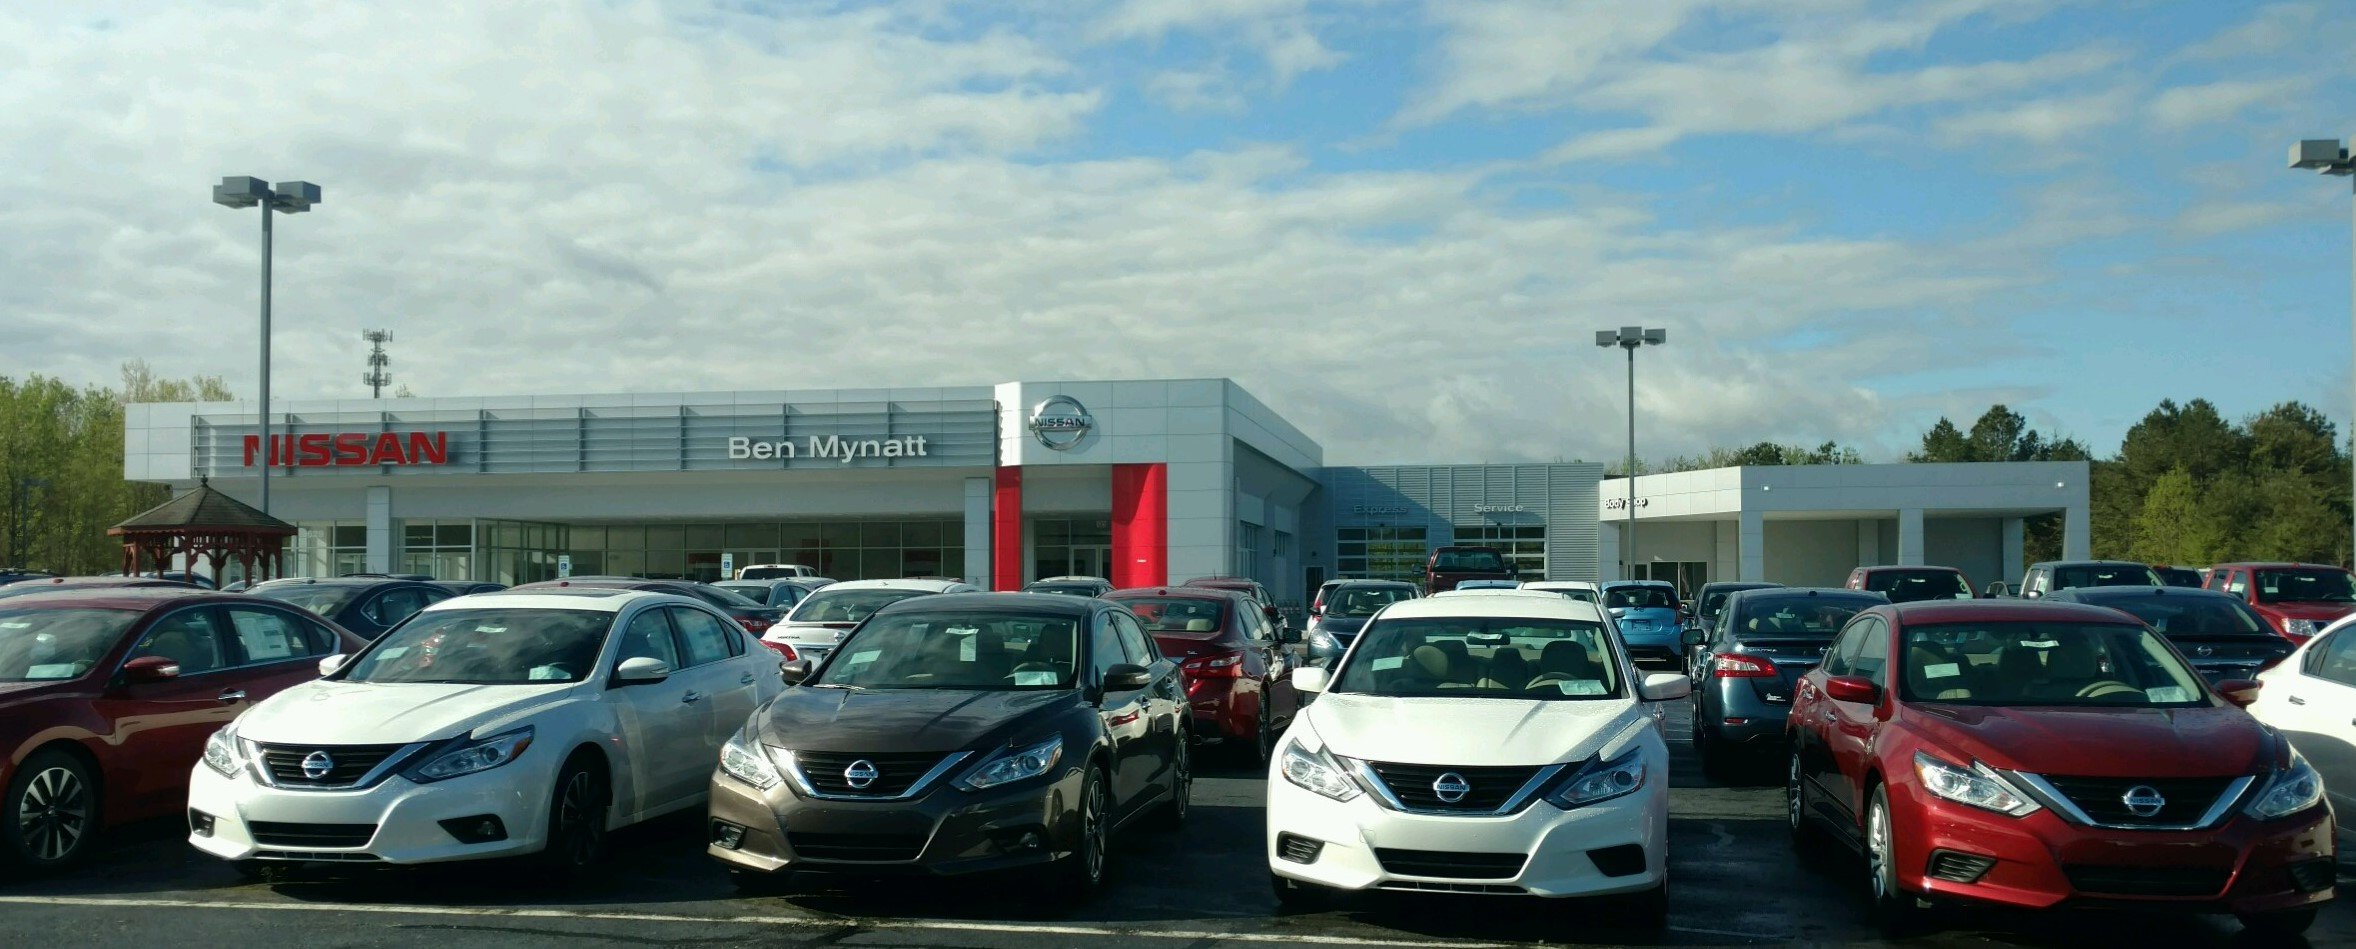 Ben mynatt nissan in salisbury north carolina